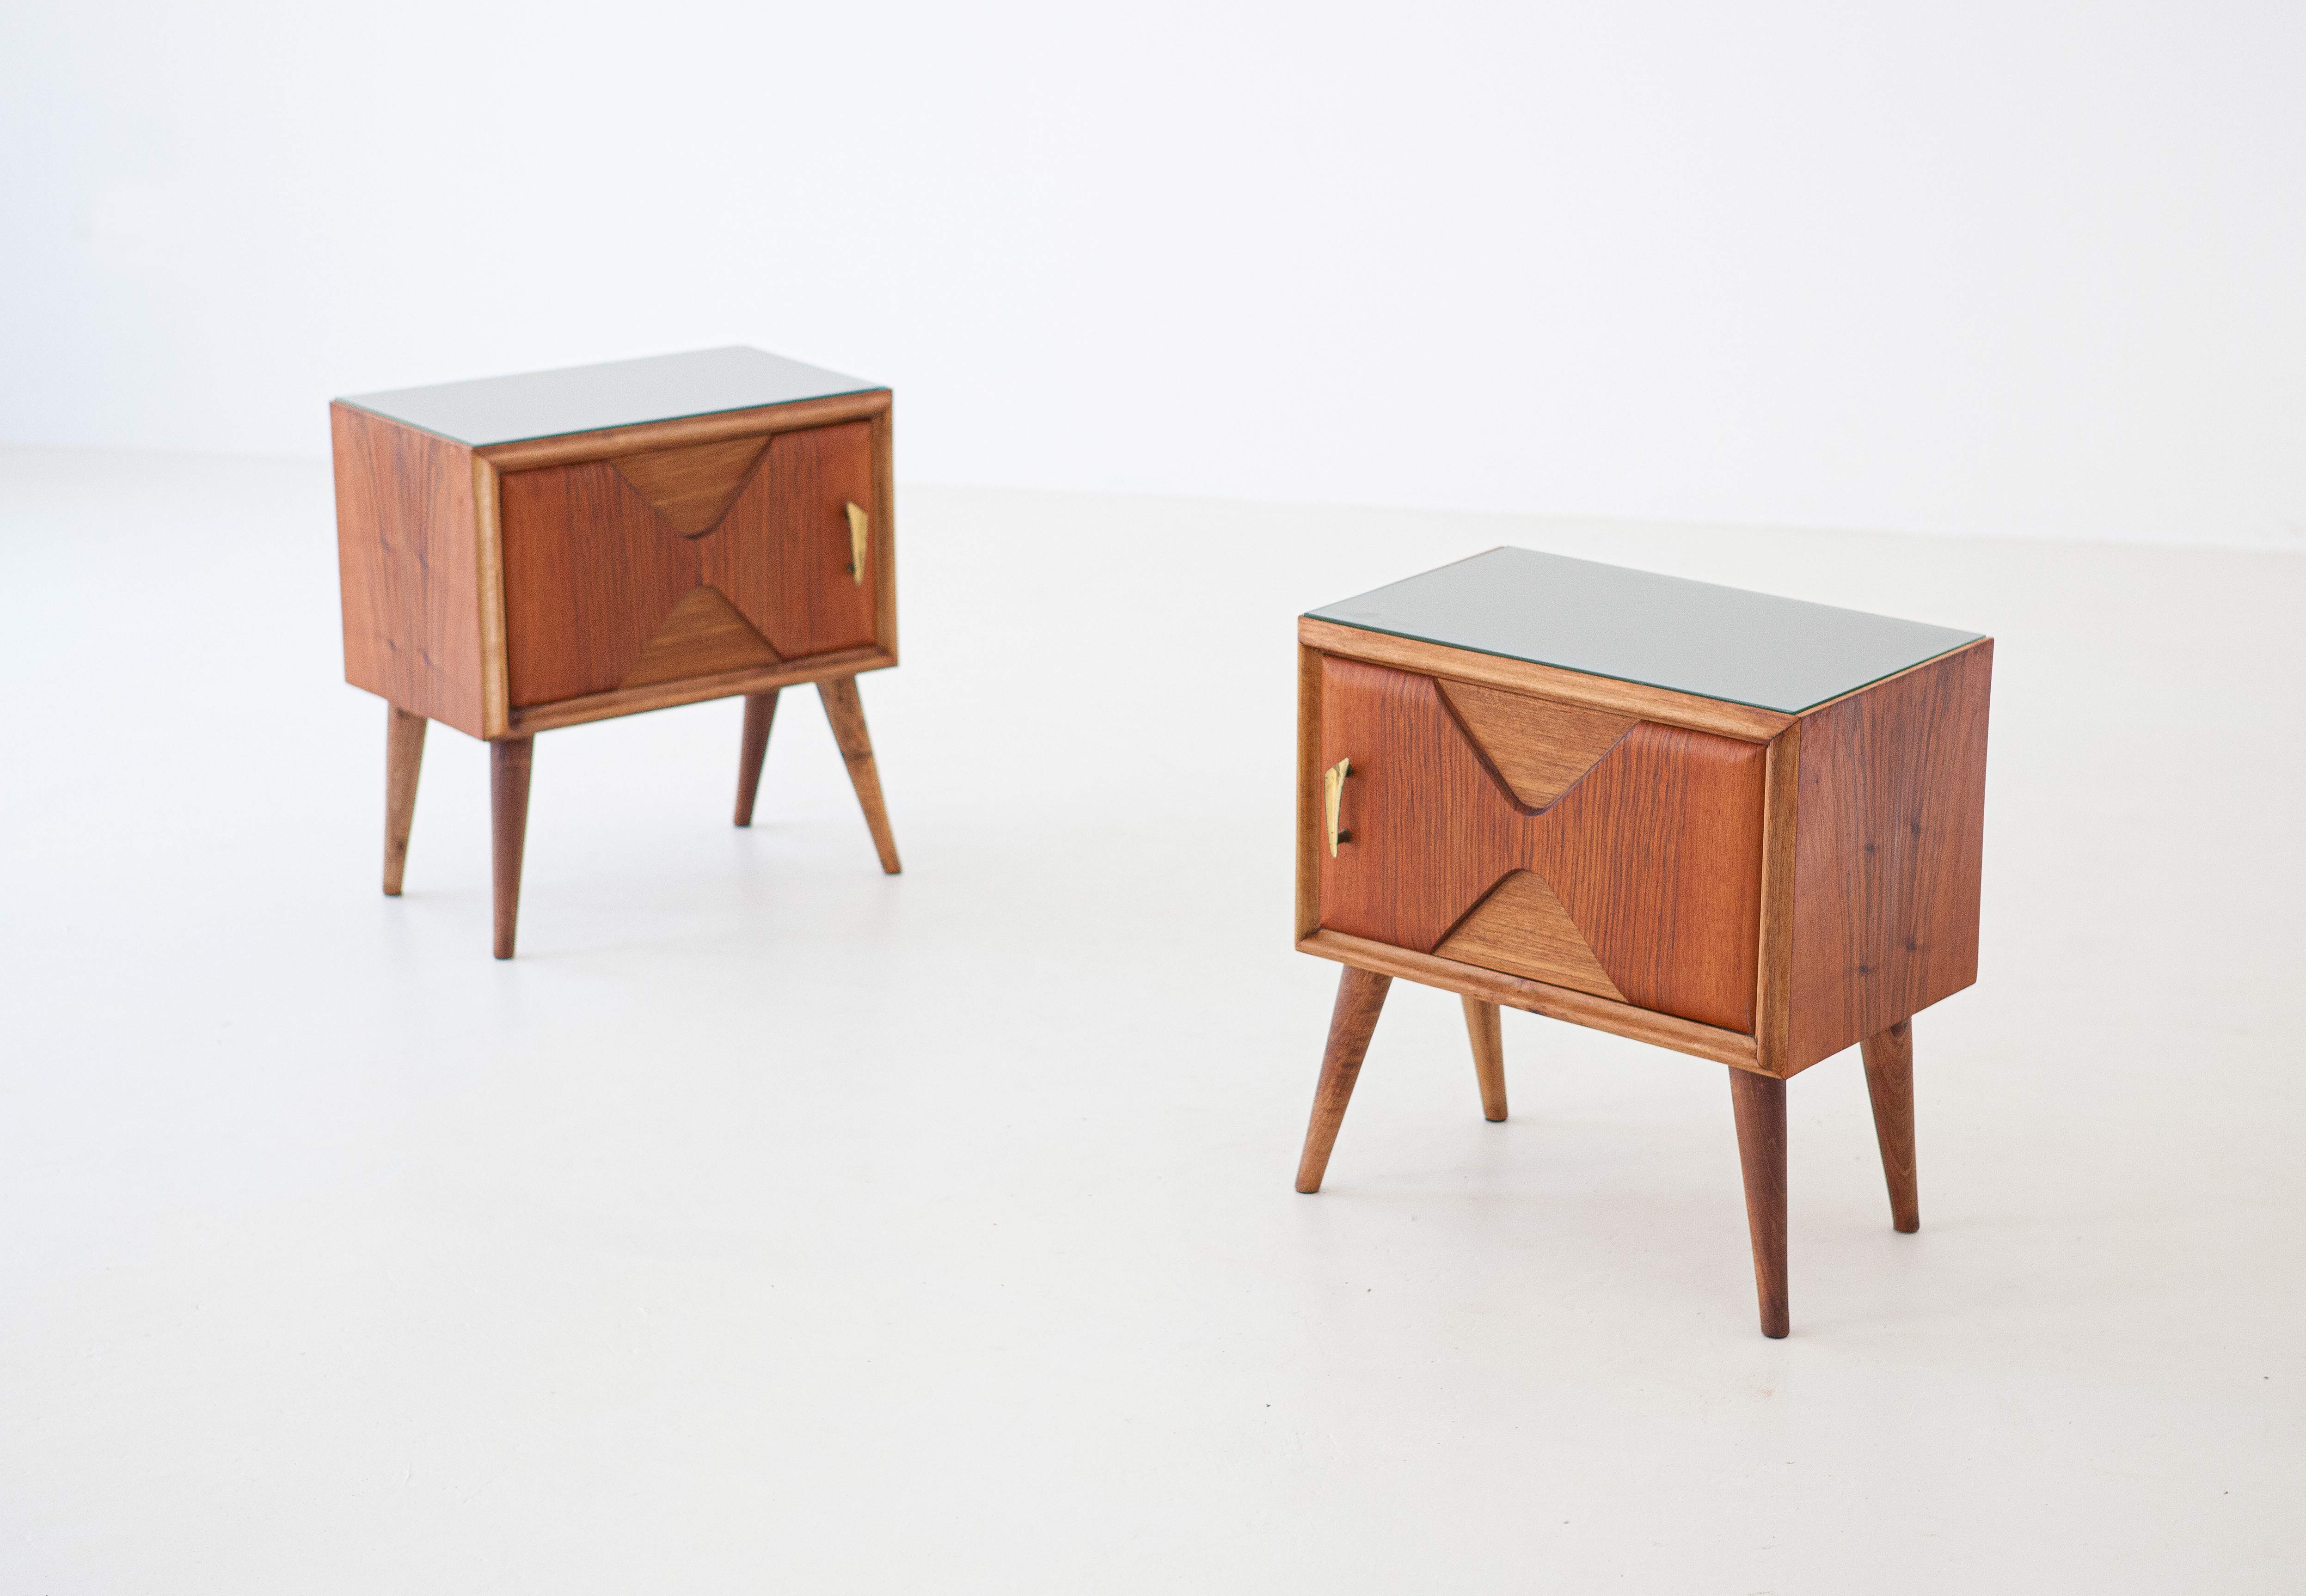 1950s-italian-exotic-wood-brass-glass-bedside-tables-2-BT81